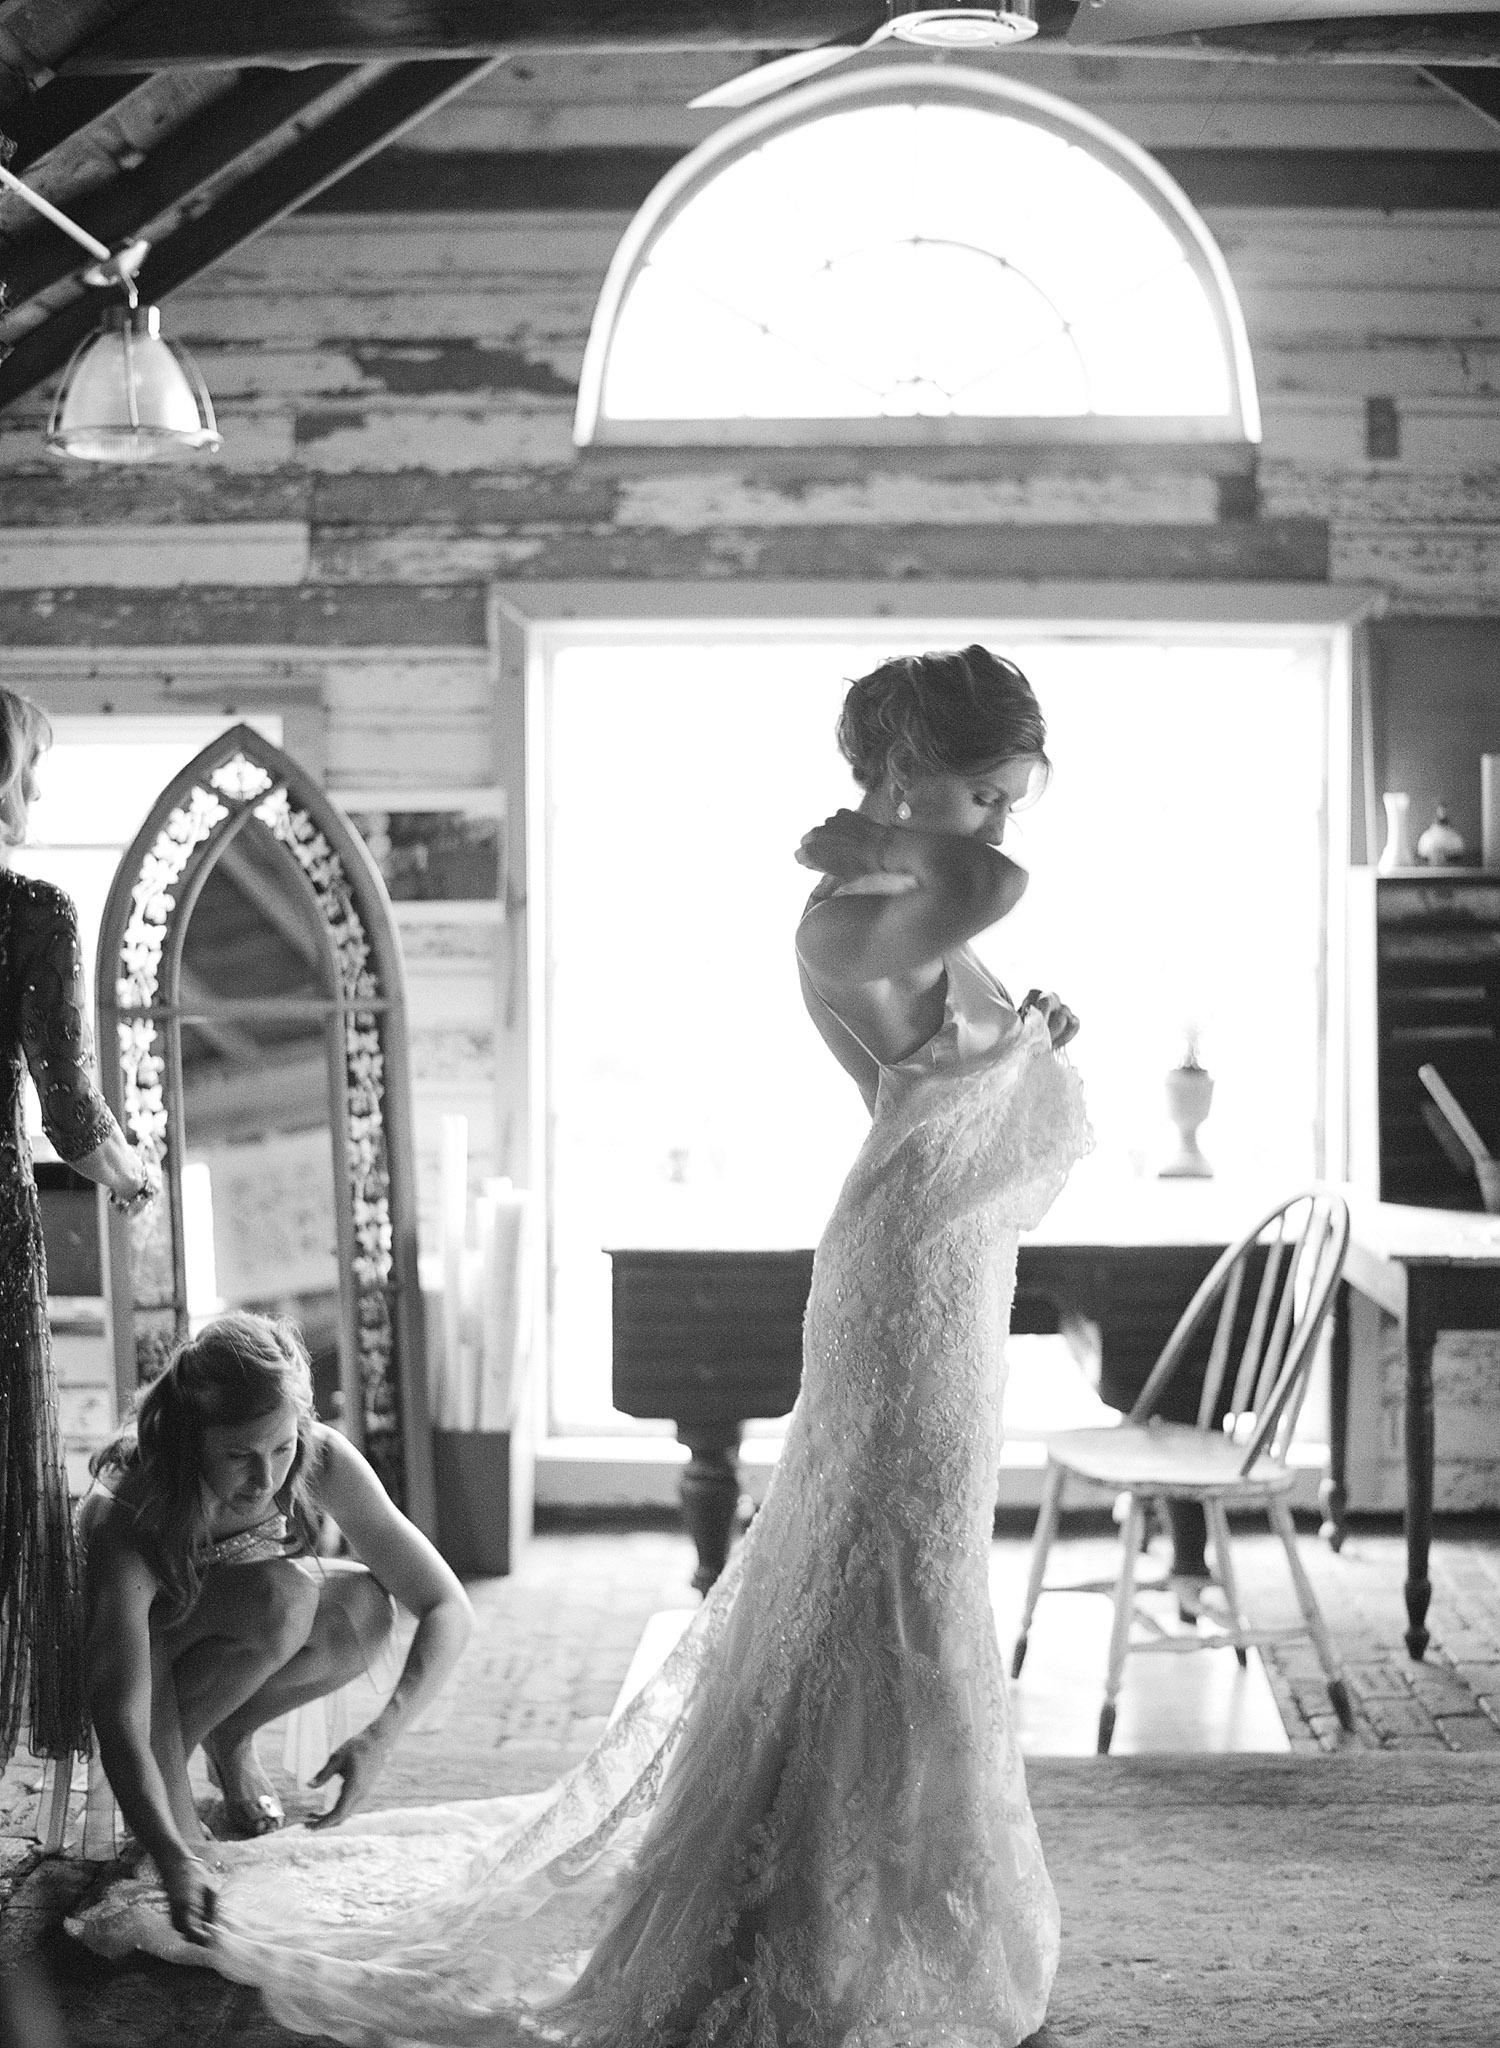 Destination wedding photographer Lexia Frank Photographs a bride getting ready at the Northwind Perennial Farms in Wisconsin in black and white wedding photography www.lexiafrank (dot)com